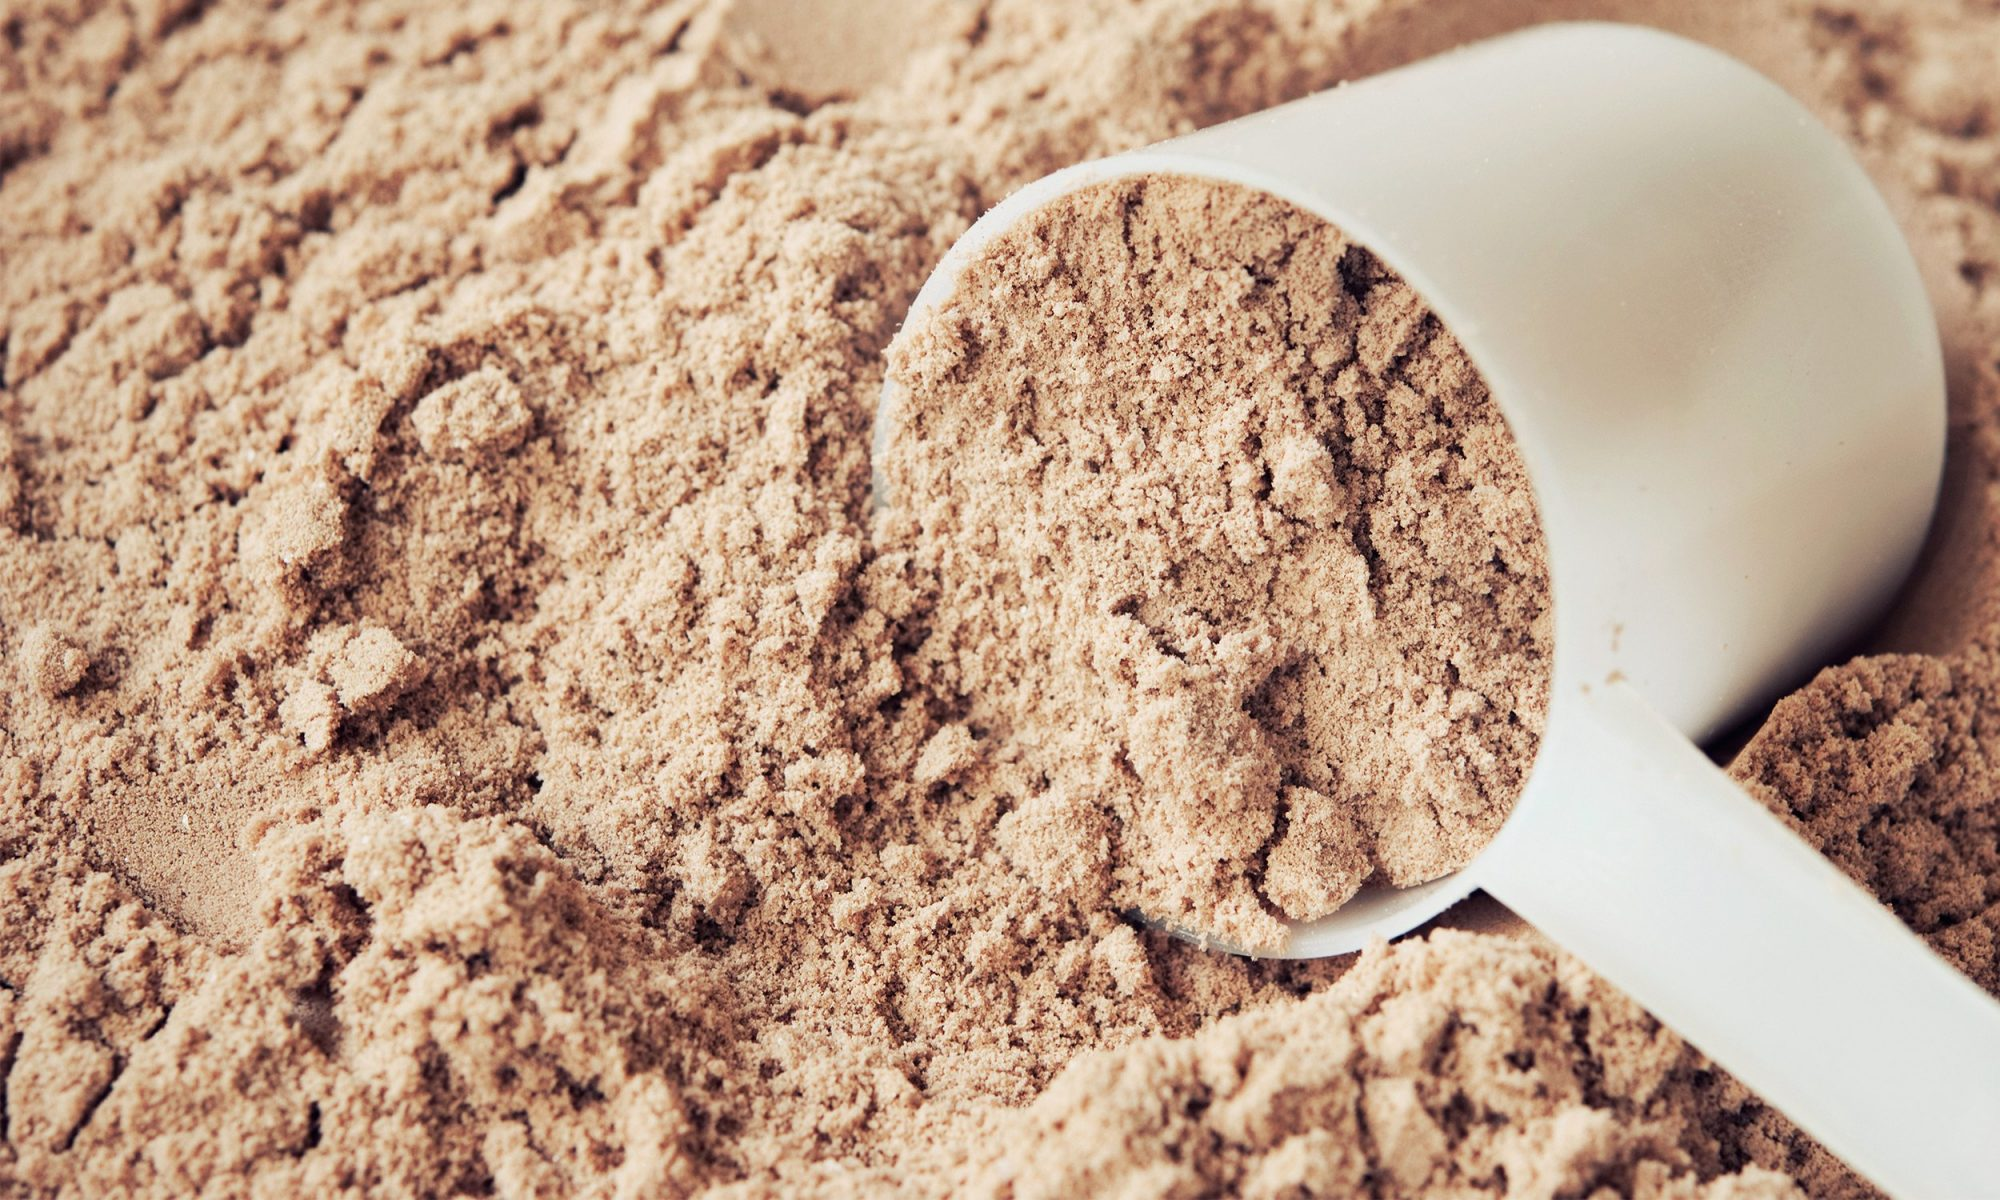 What's Actually in Protein Powder?